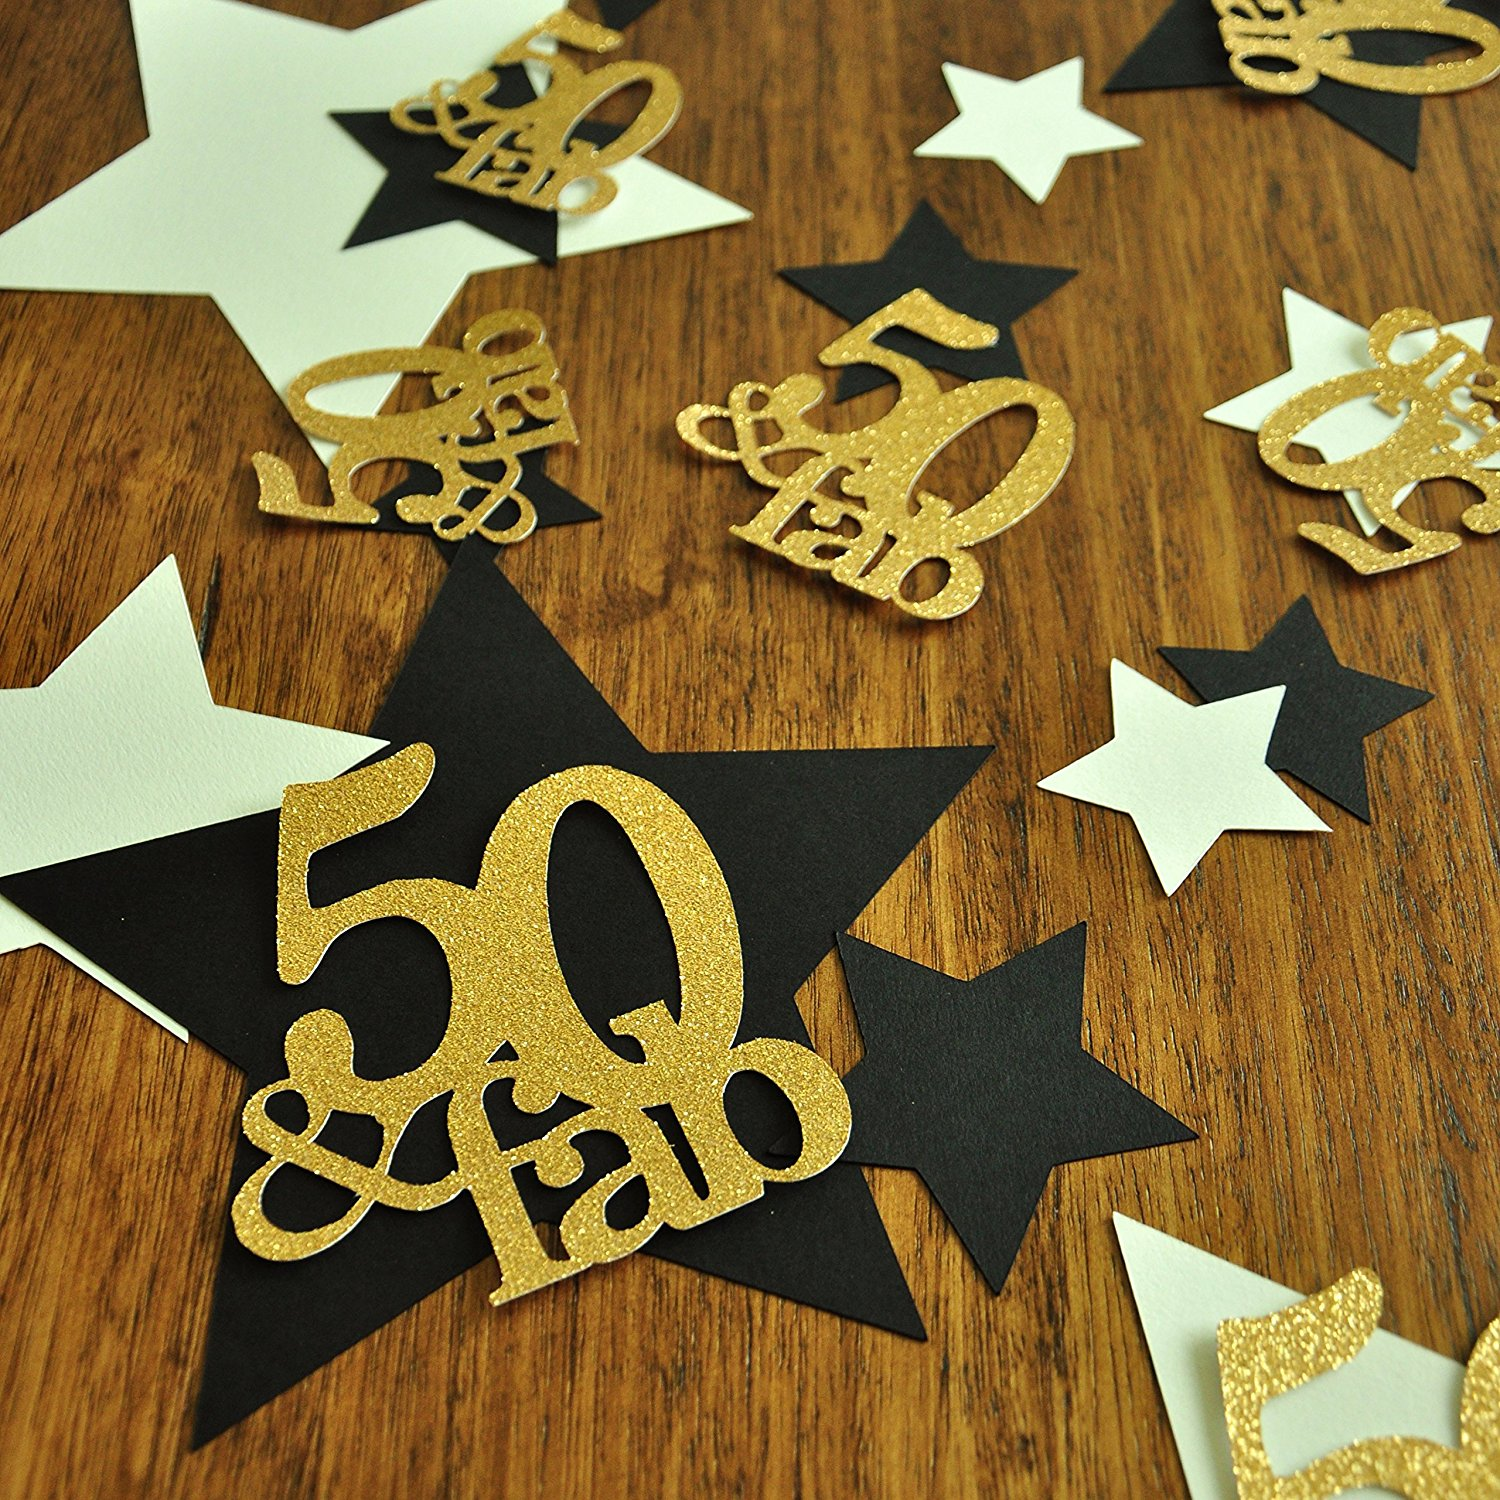 Cheap 50 Birthday Table Decorations Find 50 Birthday Table Decorations Deals On Line At Alibaba Com